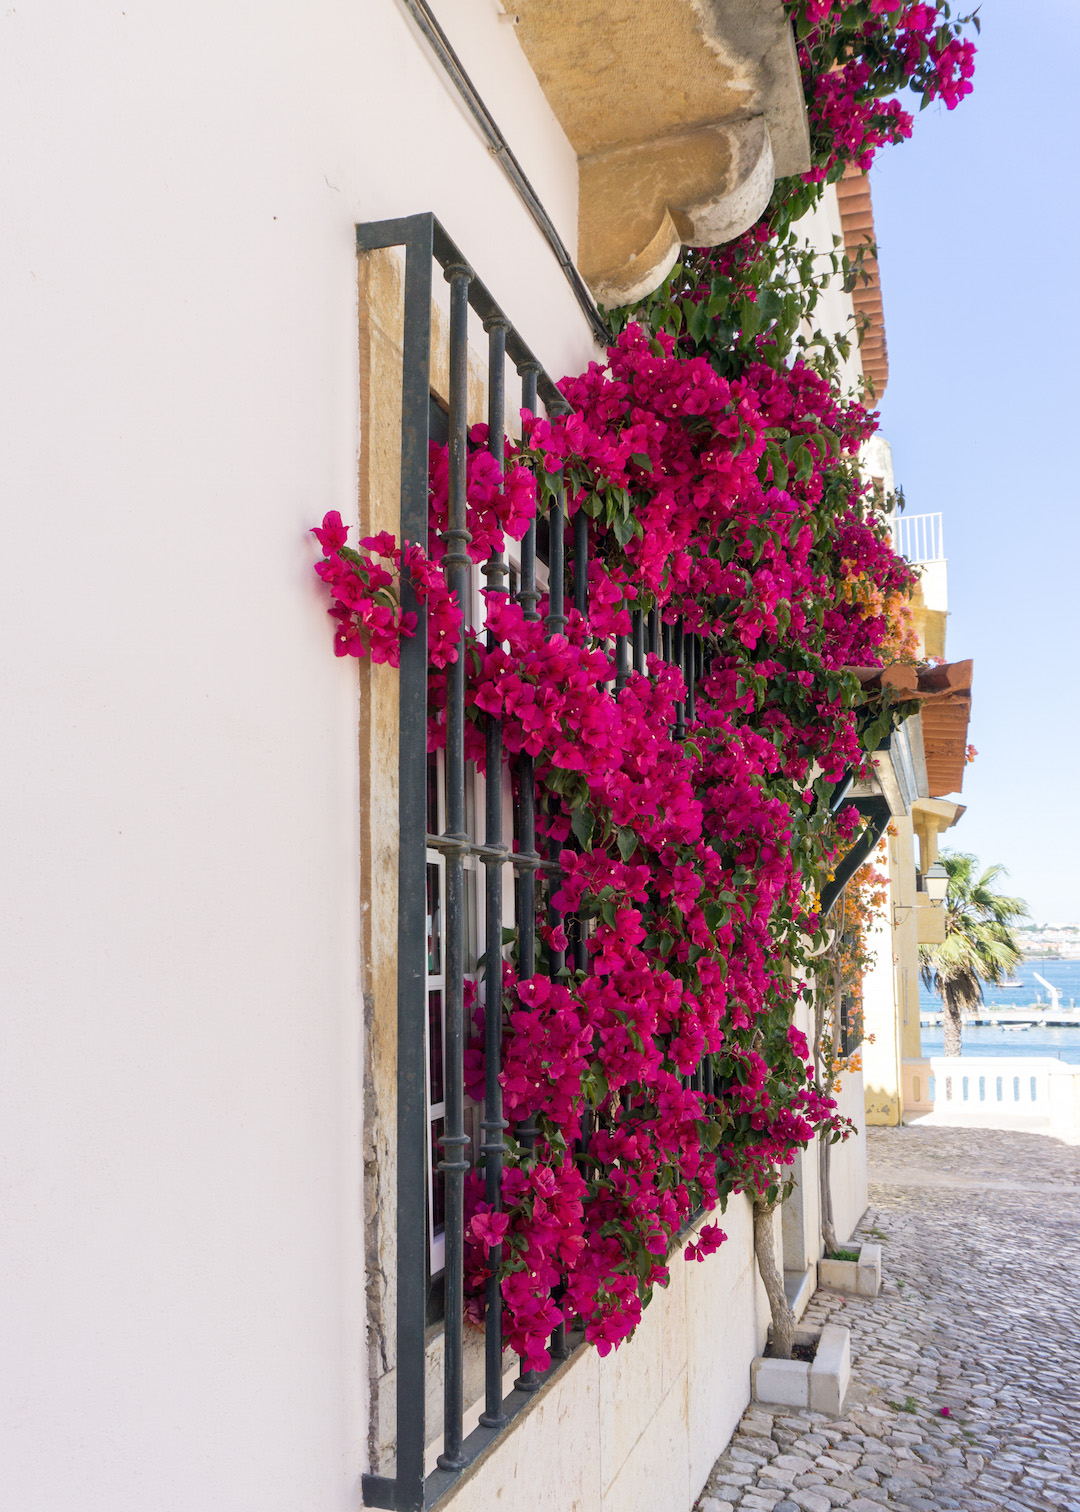 Bougainvillea in Cascais, Portugal